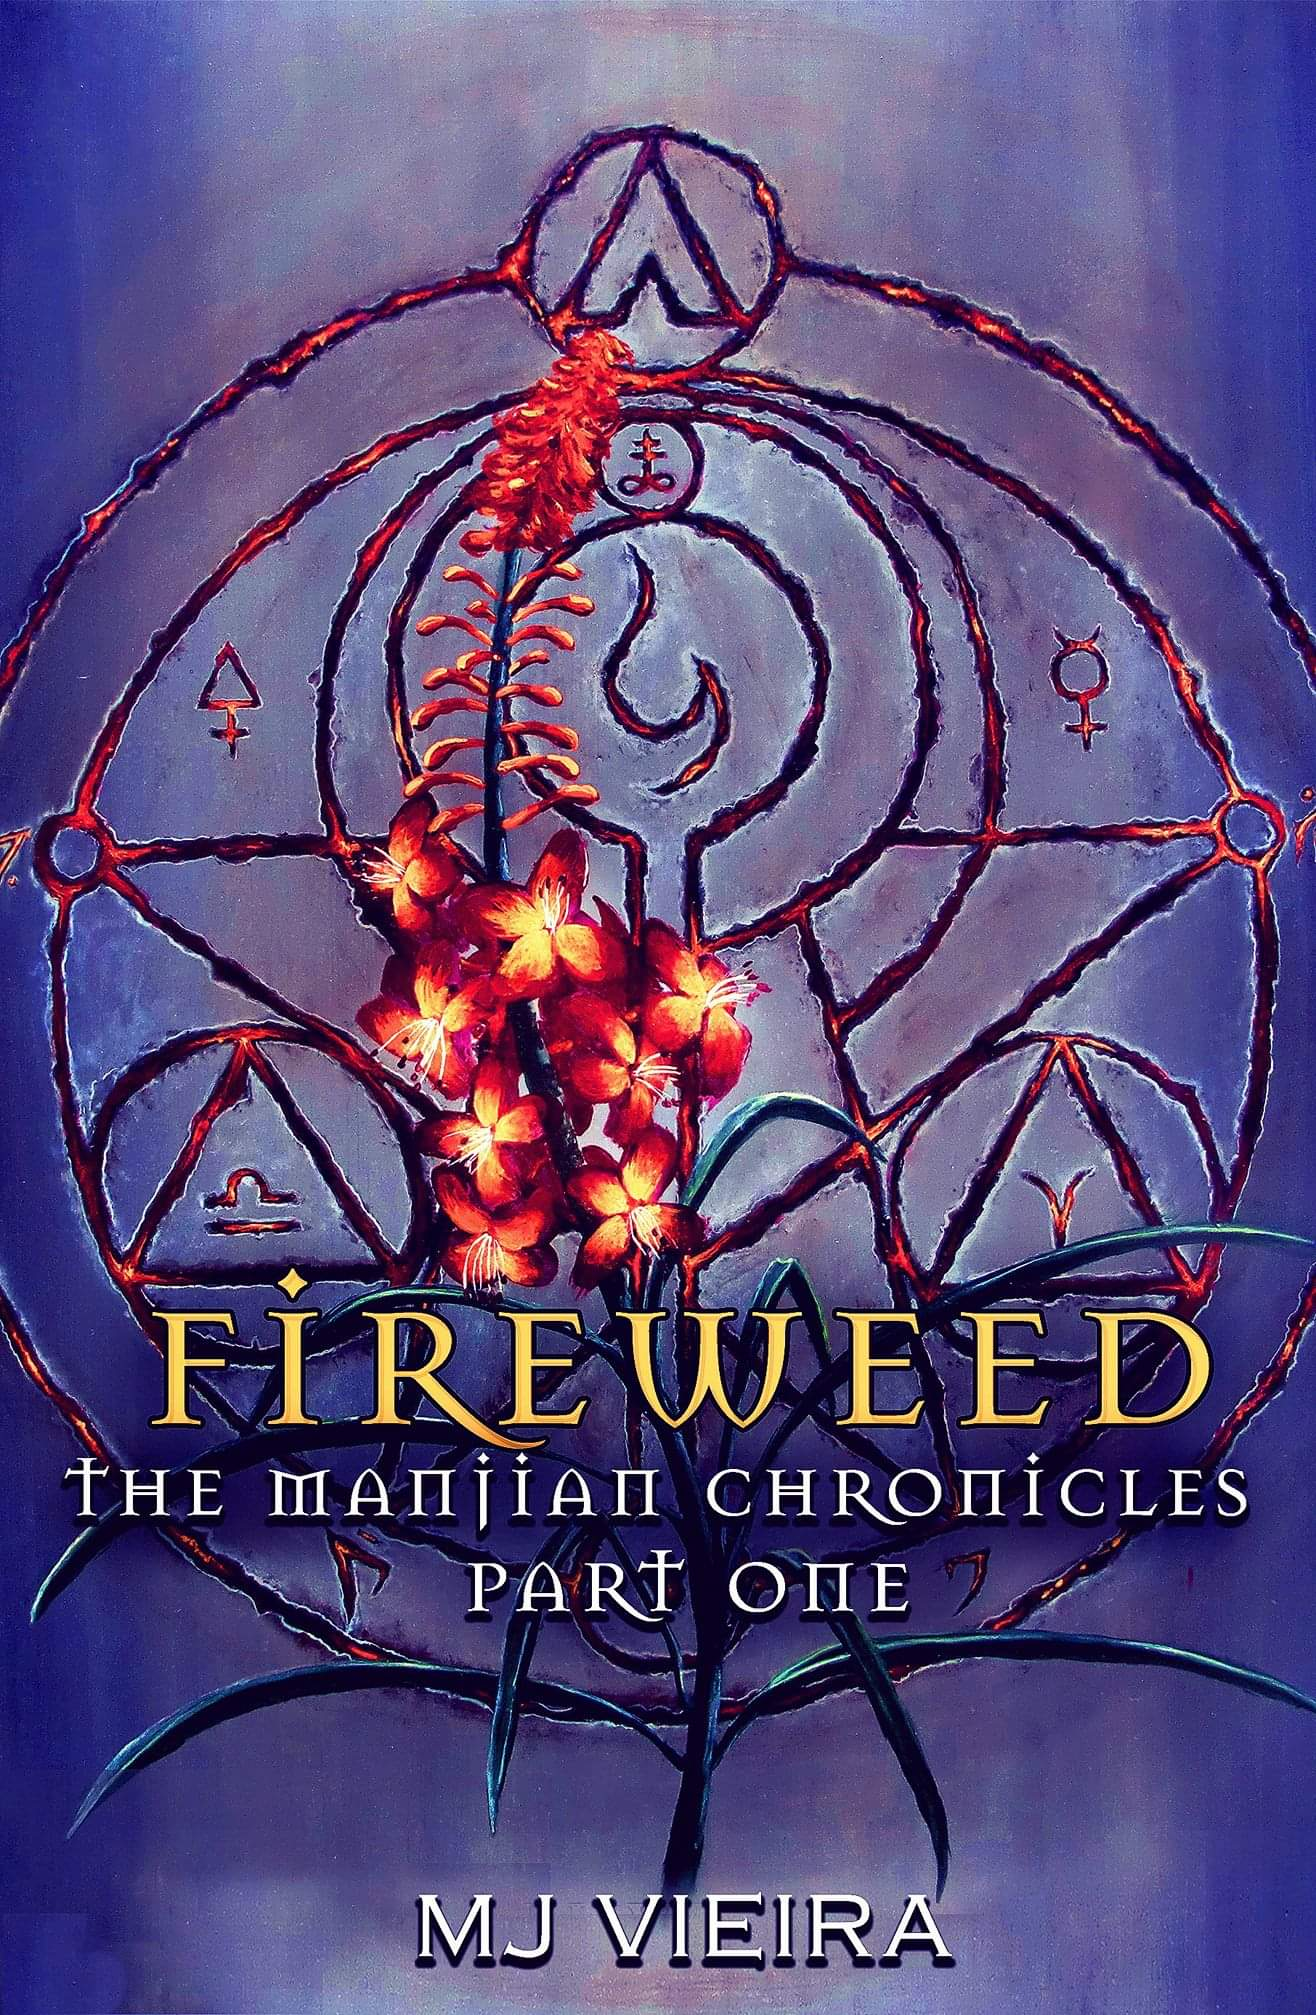 FIREWEED - The Manjian Chronicles Part One by M.J. Vieira